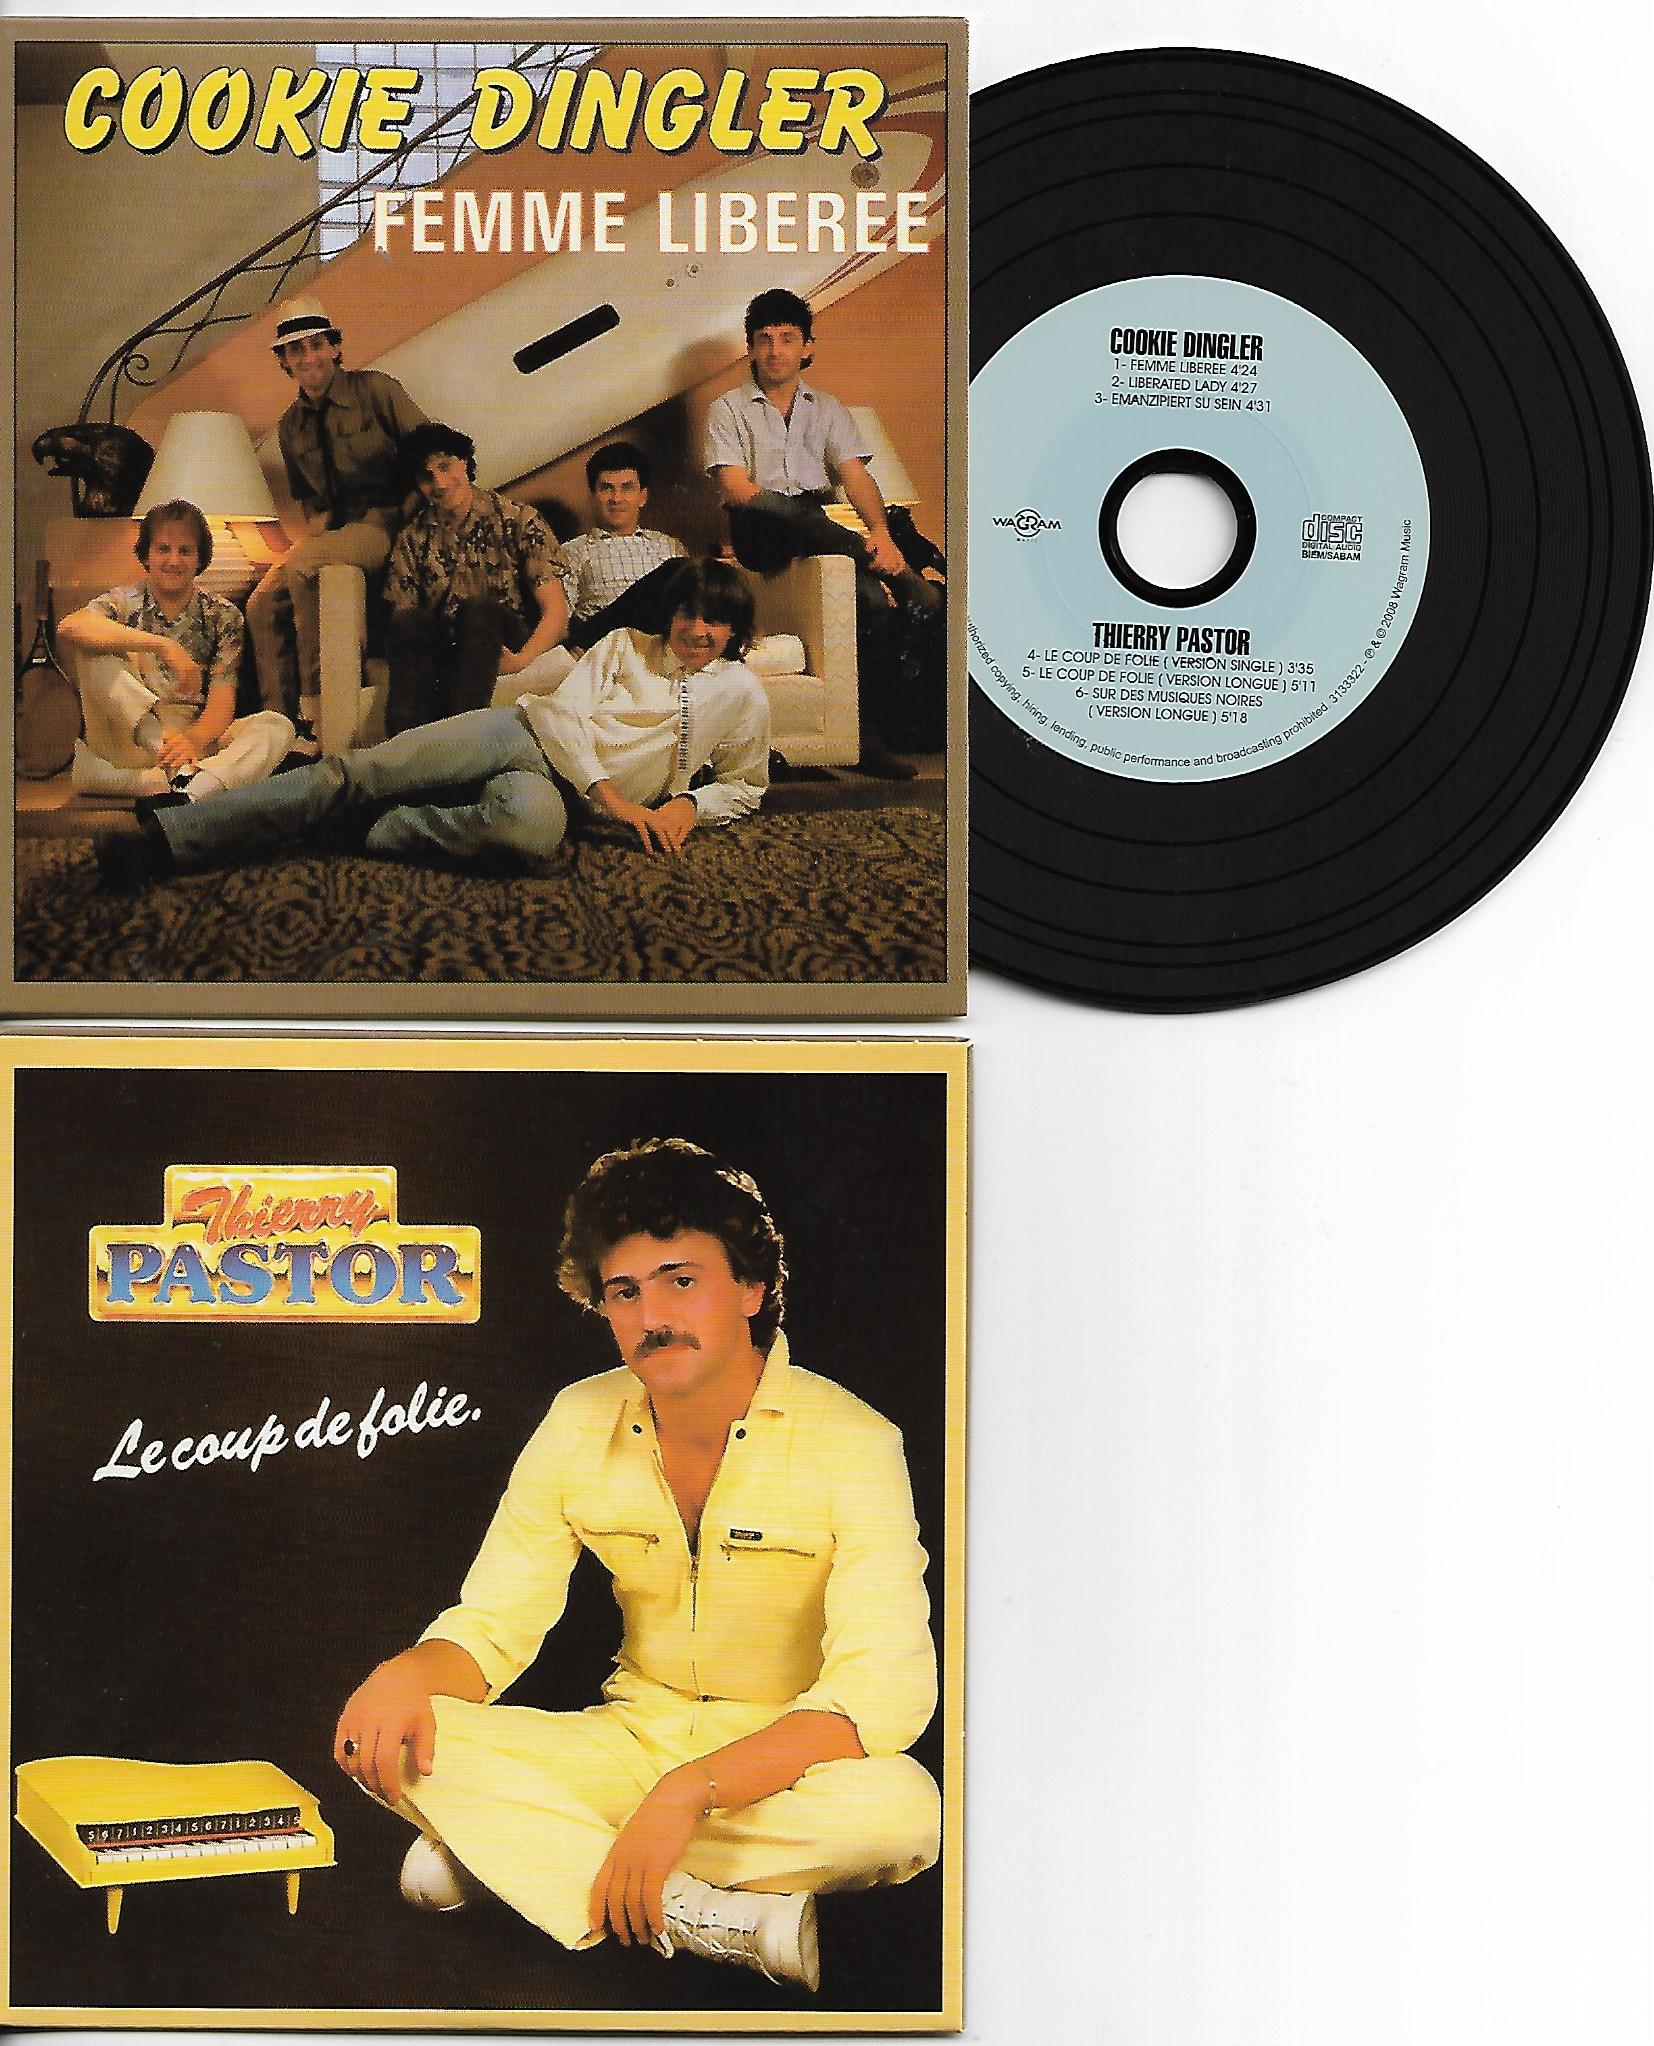 COOKIE DINGLER - THIERRY PASTOR - Femme liberee - Le coup de folie - special reissue CARD SLEEVE REMIXES 6-track - CD single